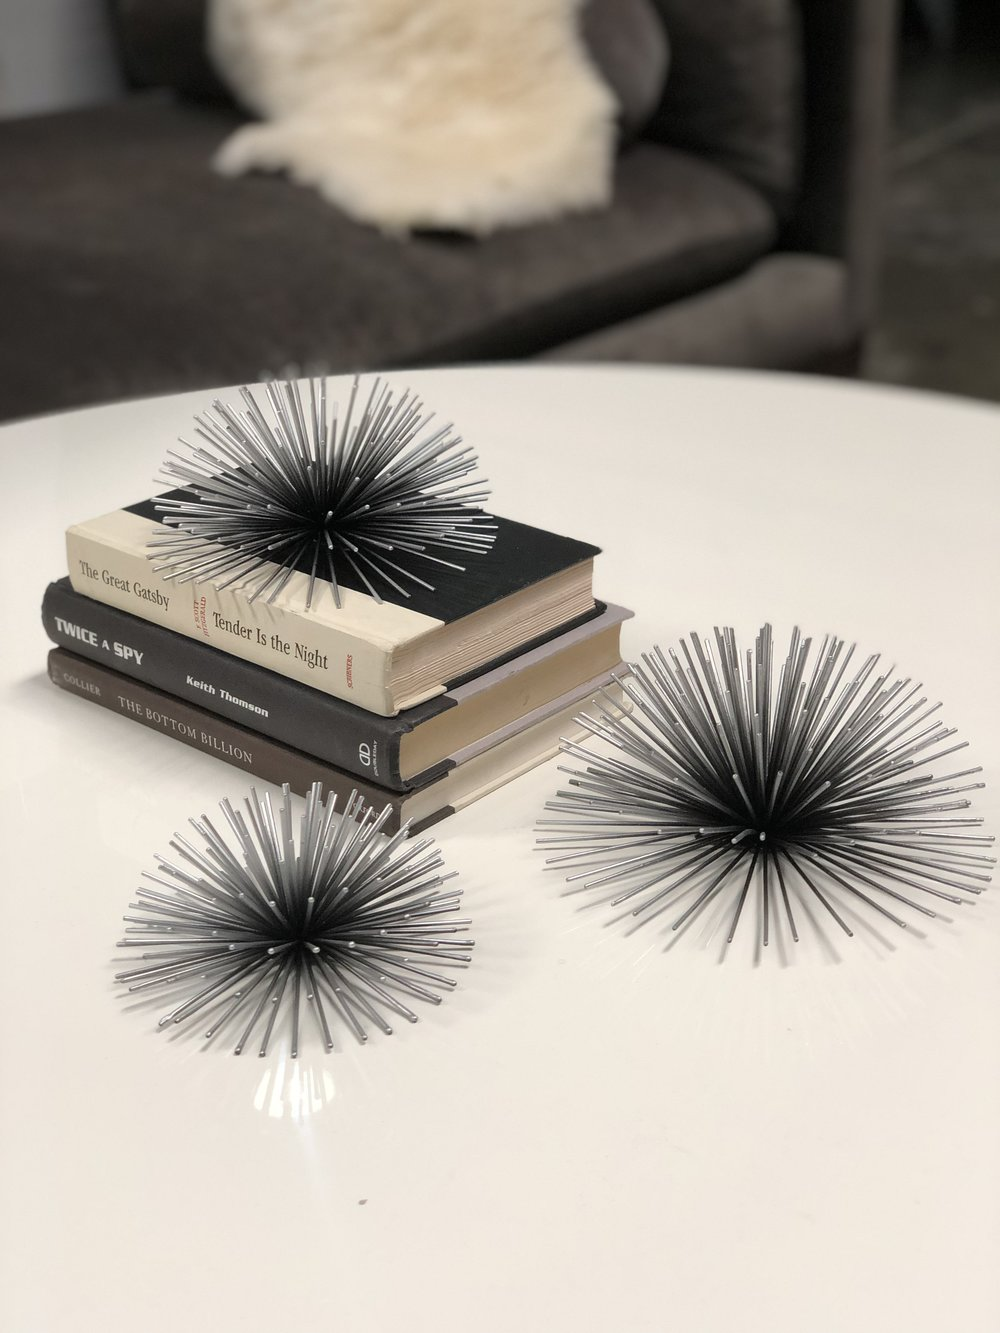 Stjerne Wall Art or Table Art - Bring shimmer to your wall, coffee table and bookshelves every day of the year with this metal starburst set. A little glam, a little wow, and a little painful if you accidentally mistake them for a massage roller...wait, maybe we're onto something!